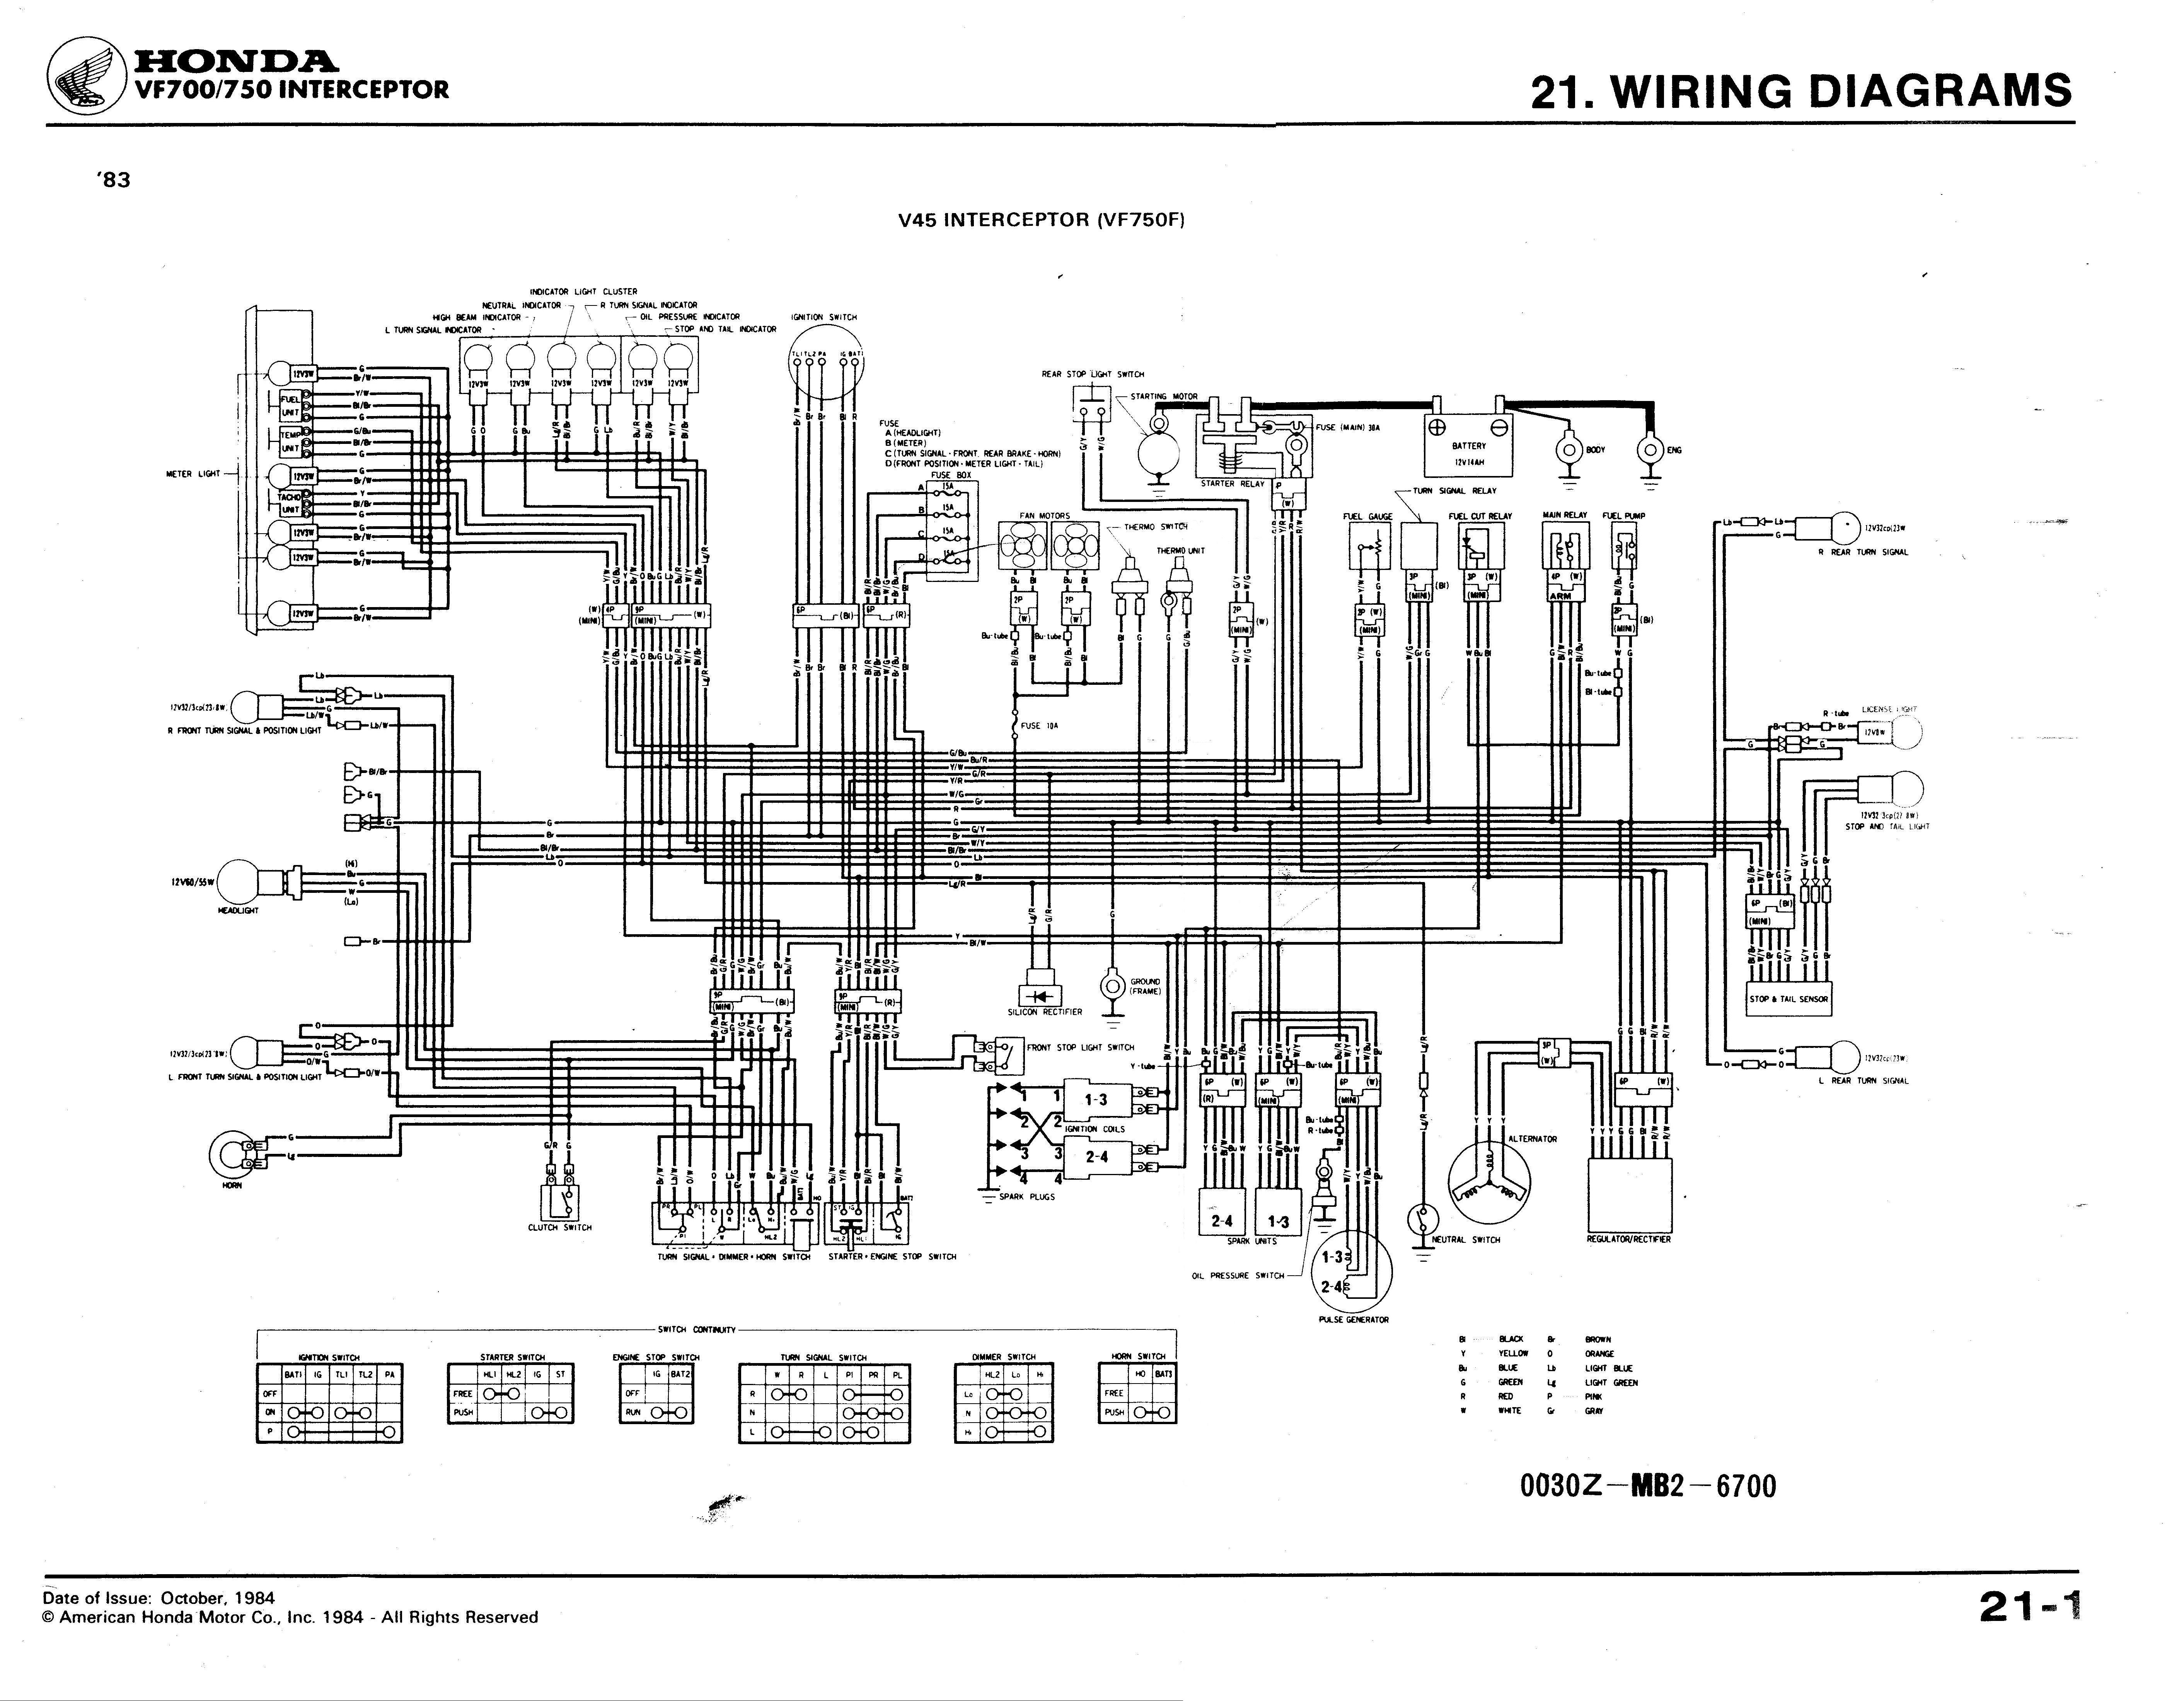 Honda Ft500 Ignition Wiring Diagram Private Sharing About Ft 500 Data Diagrams U2022 Rh E Mobilecode Co